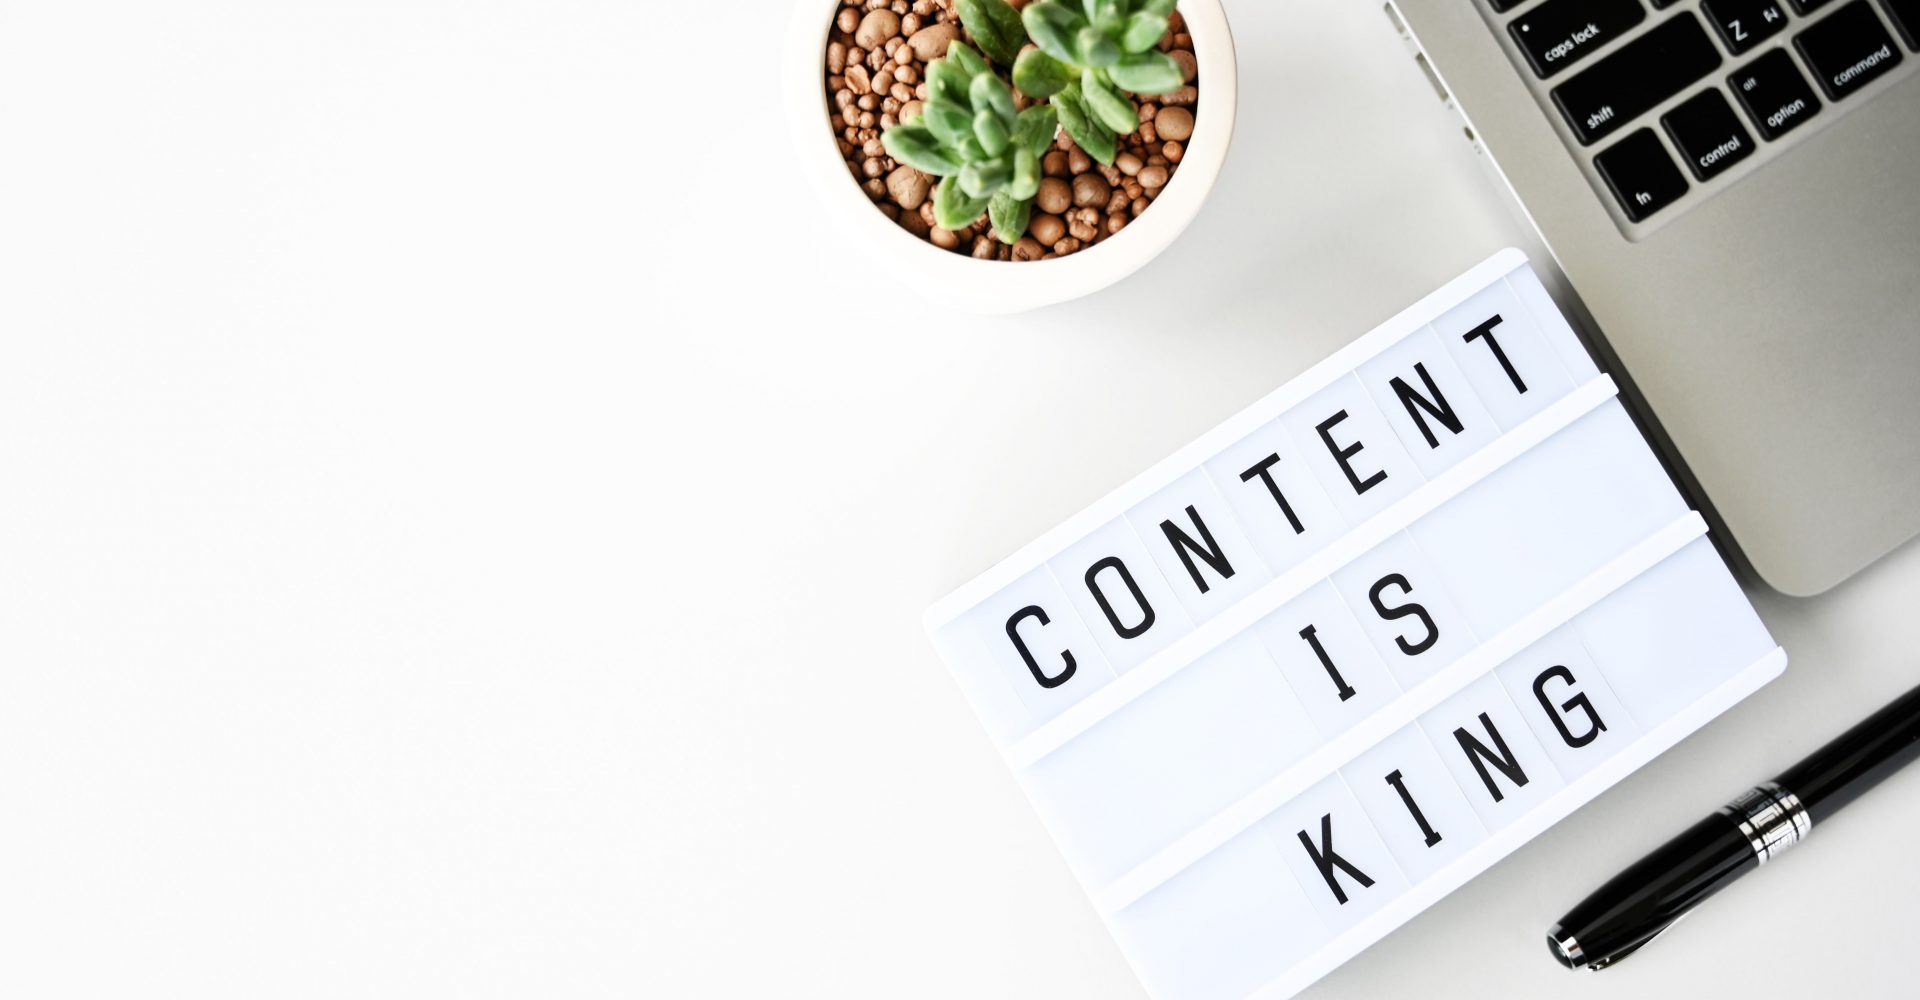 Content Marketing – Deliver your content the right way